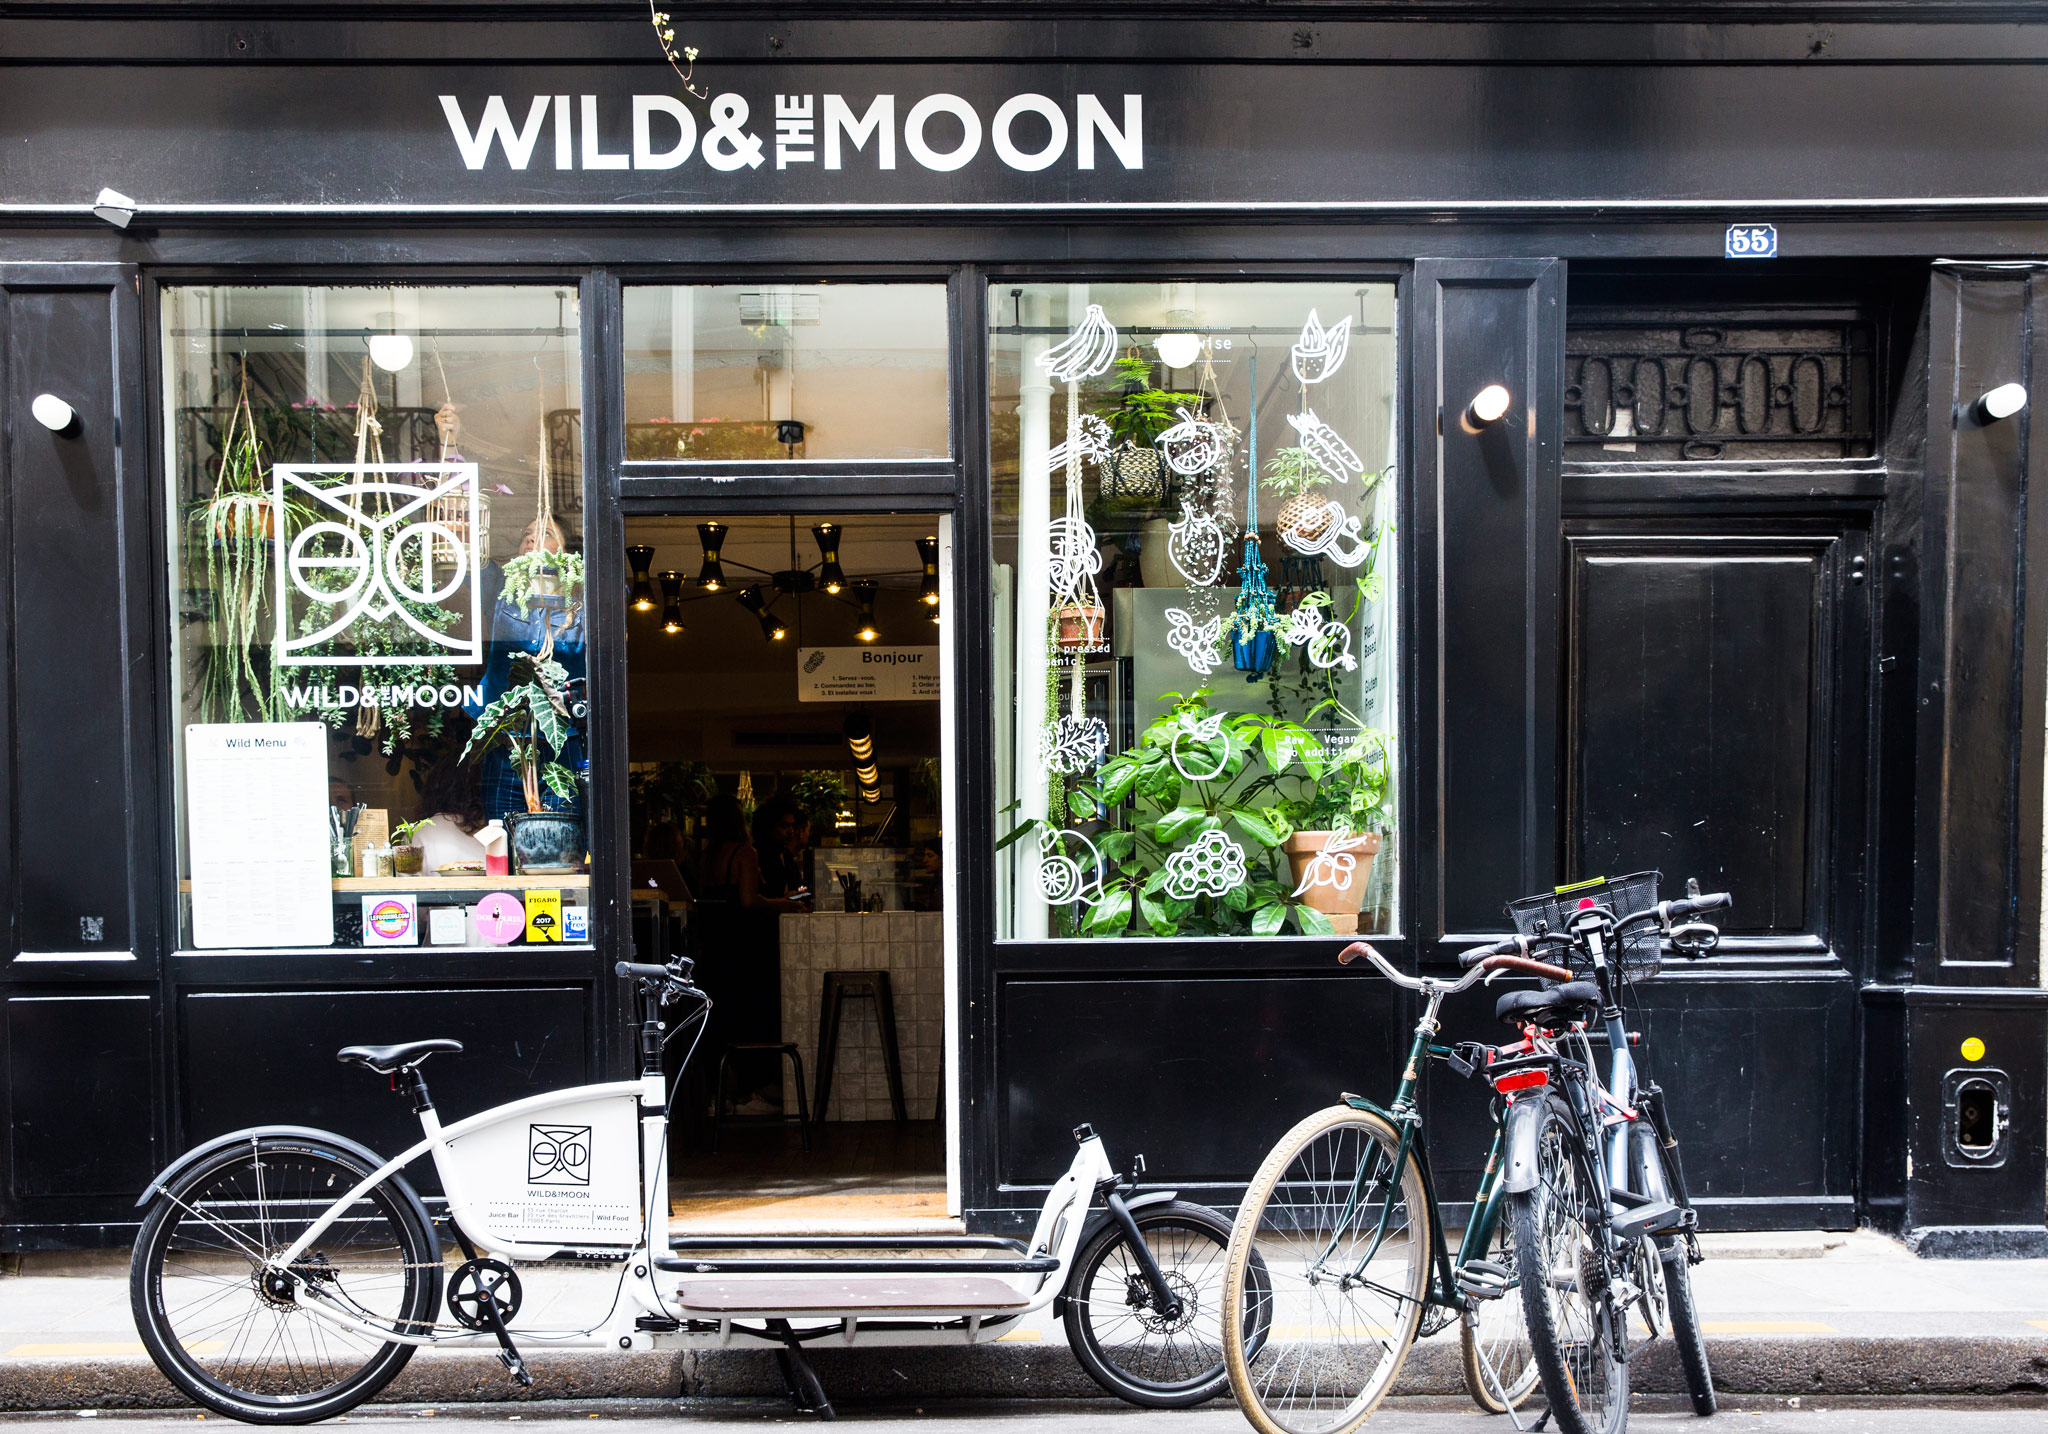 One of the best gluten-free restaurants and bakeries in Paris is Wild and the Moon, whose exterior you can see here, with bikes parked outside its black shop front.